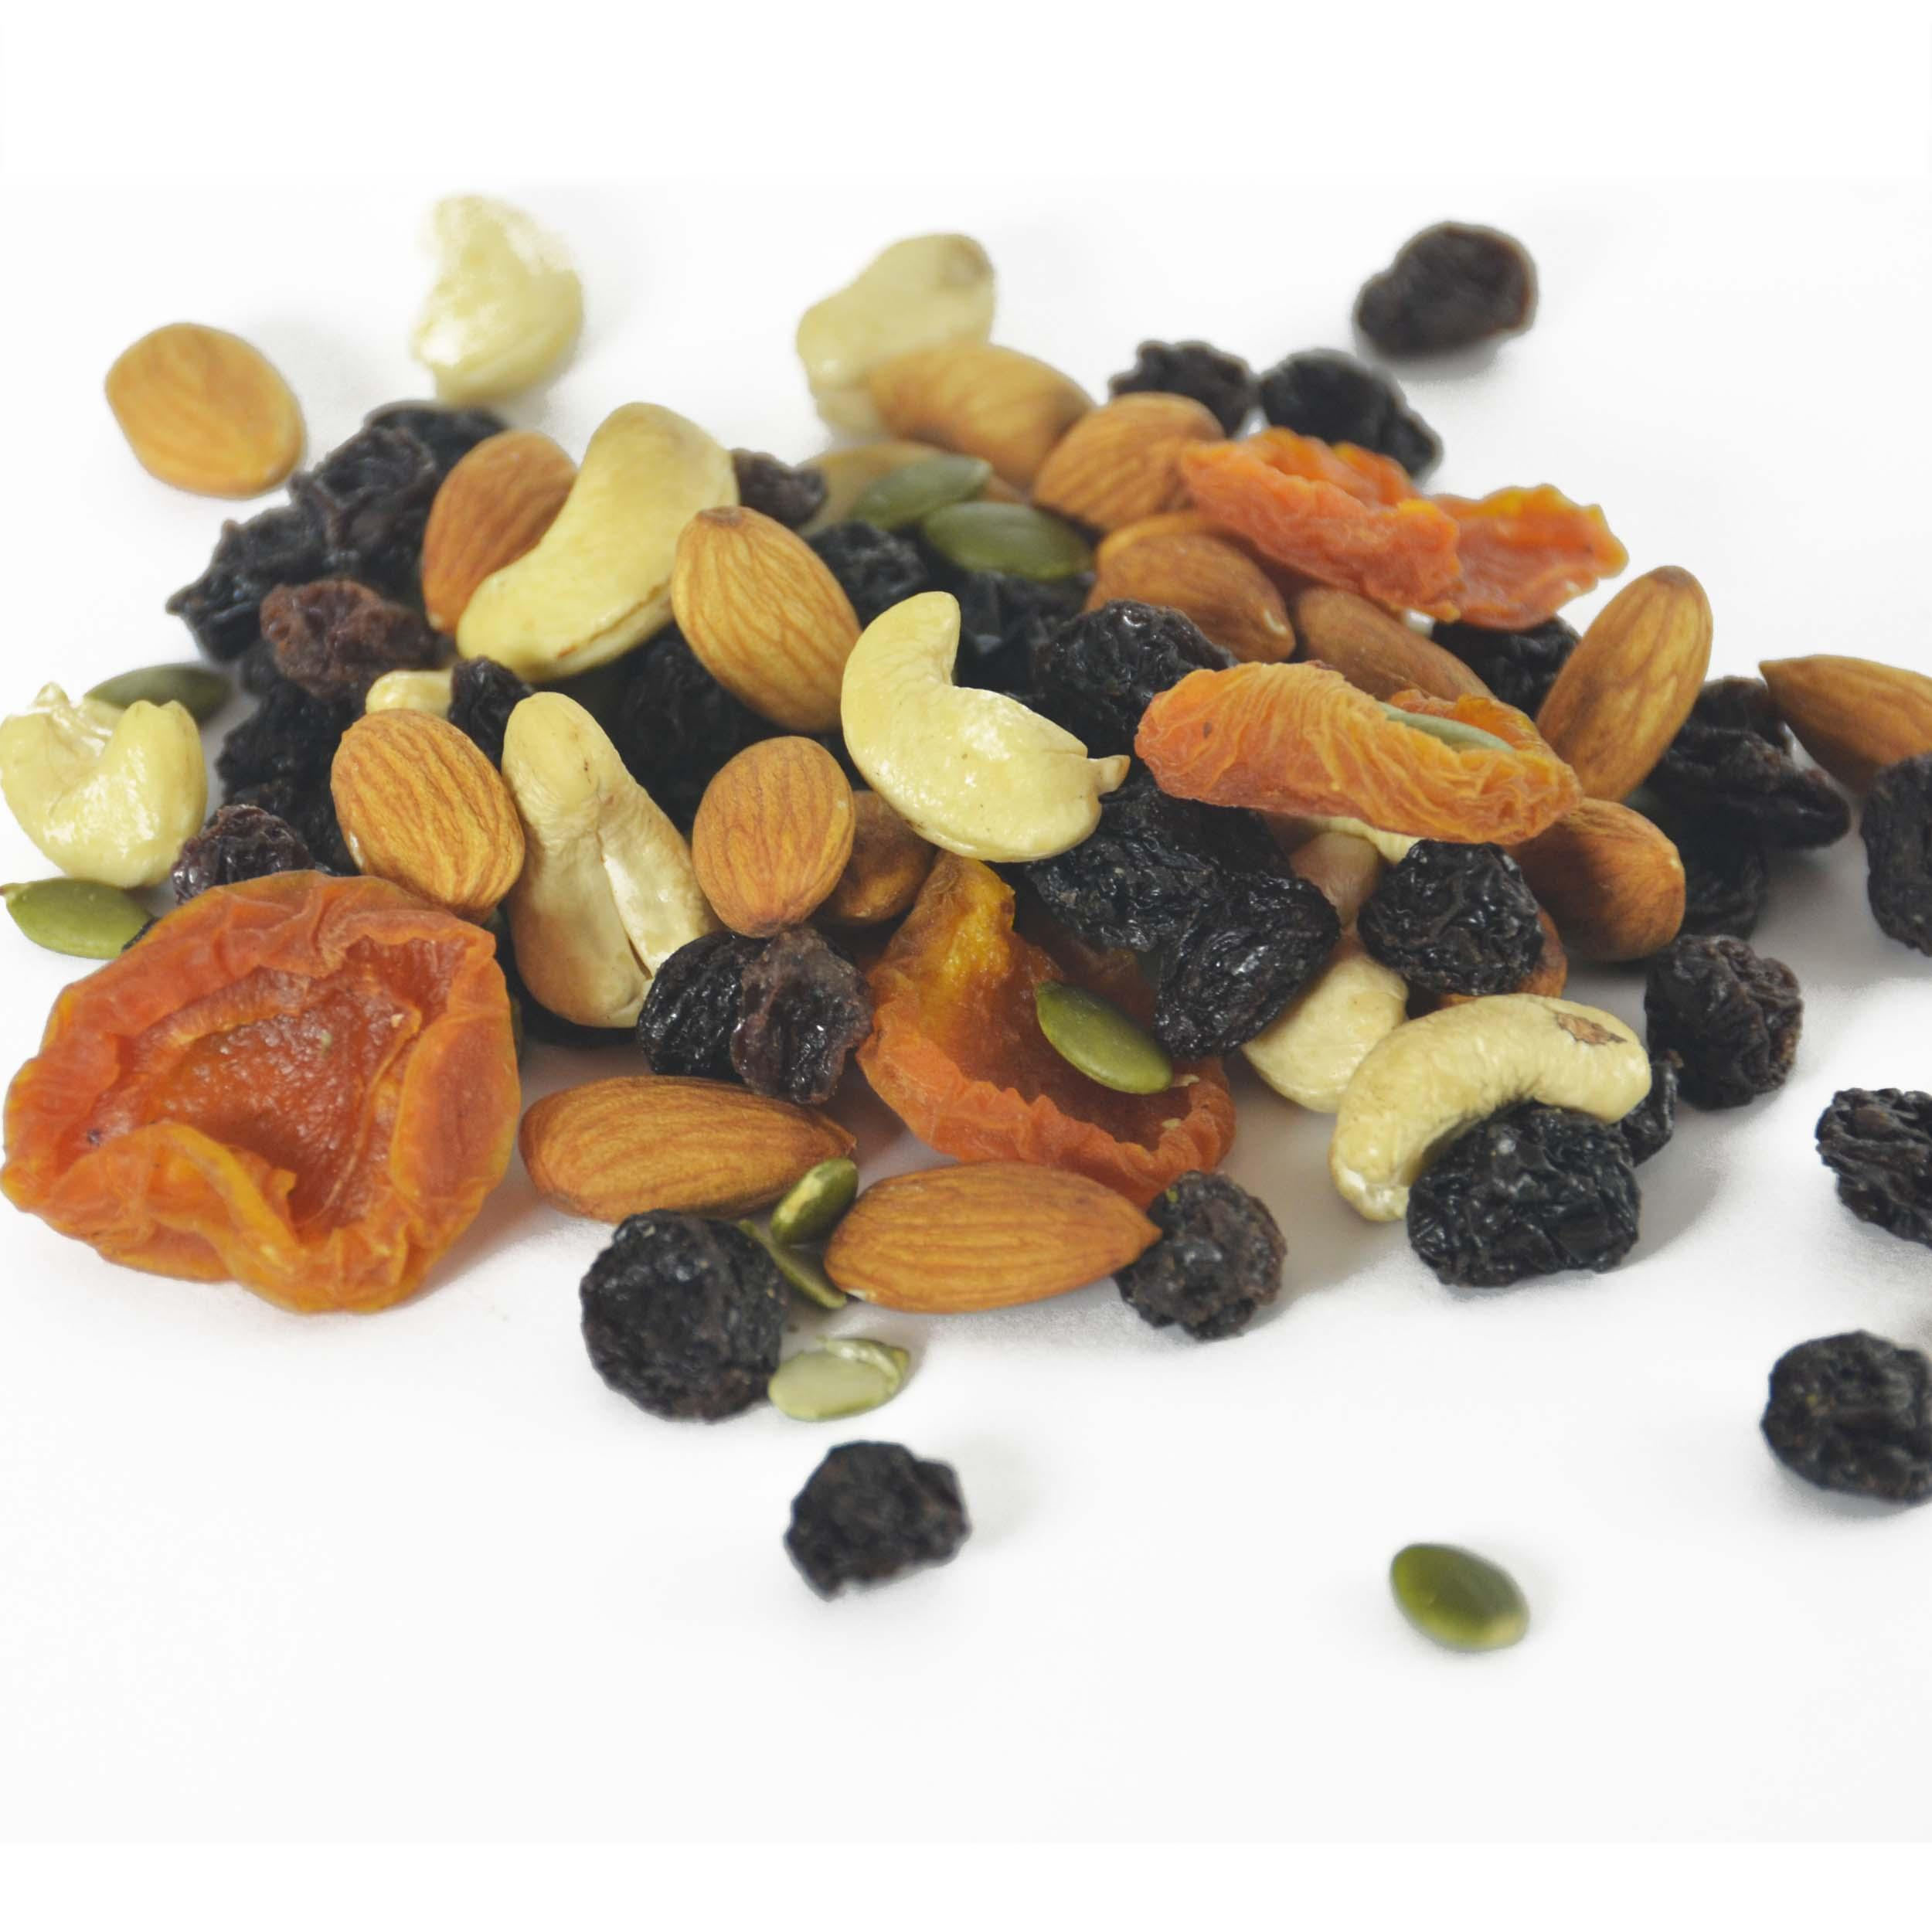 Fruit and Nut Mixes